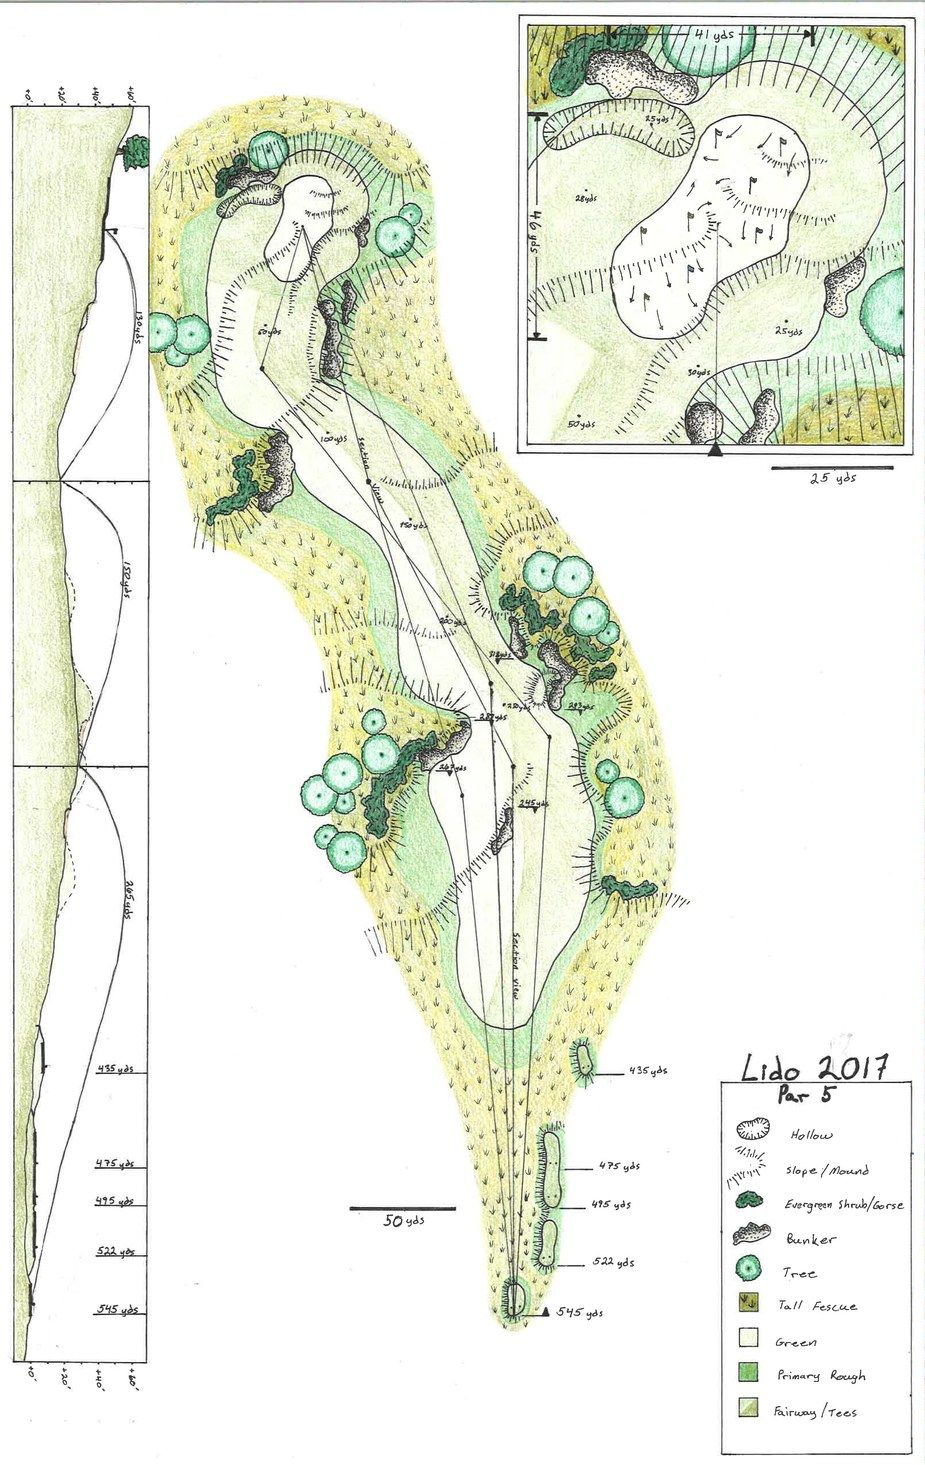 29+ Crystal downs golf course website info